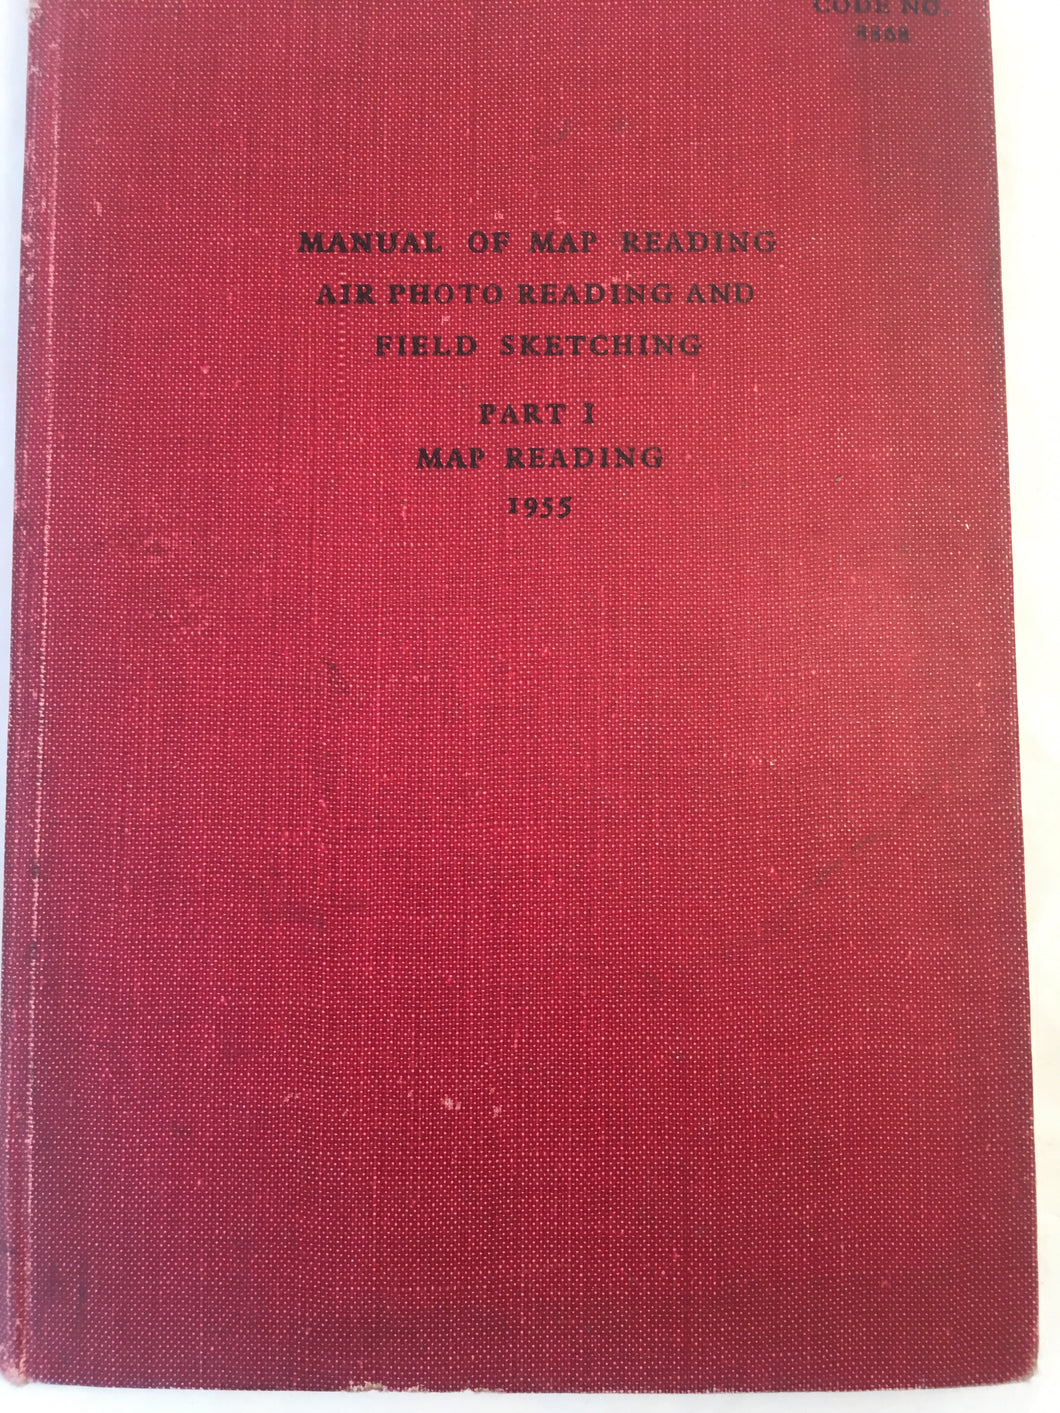 Manual of Map reading, Air photo Reading and Field Sketching - 1955